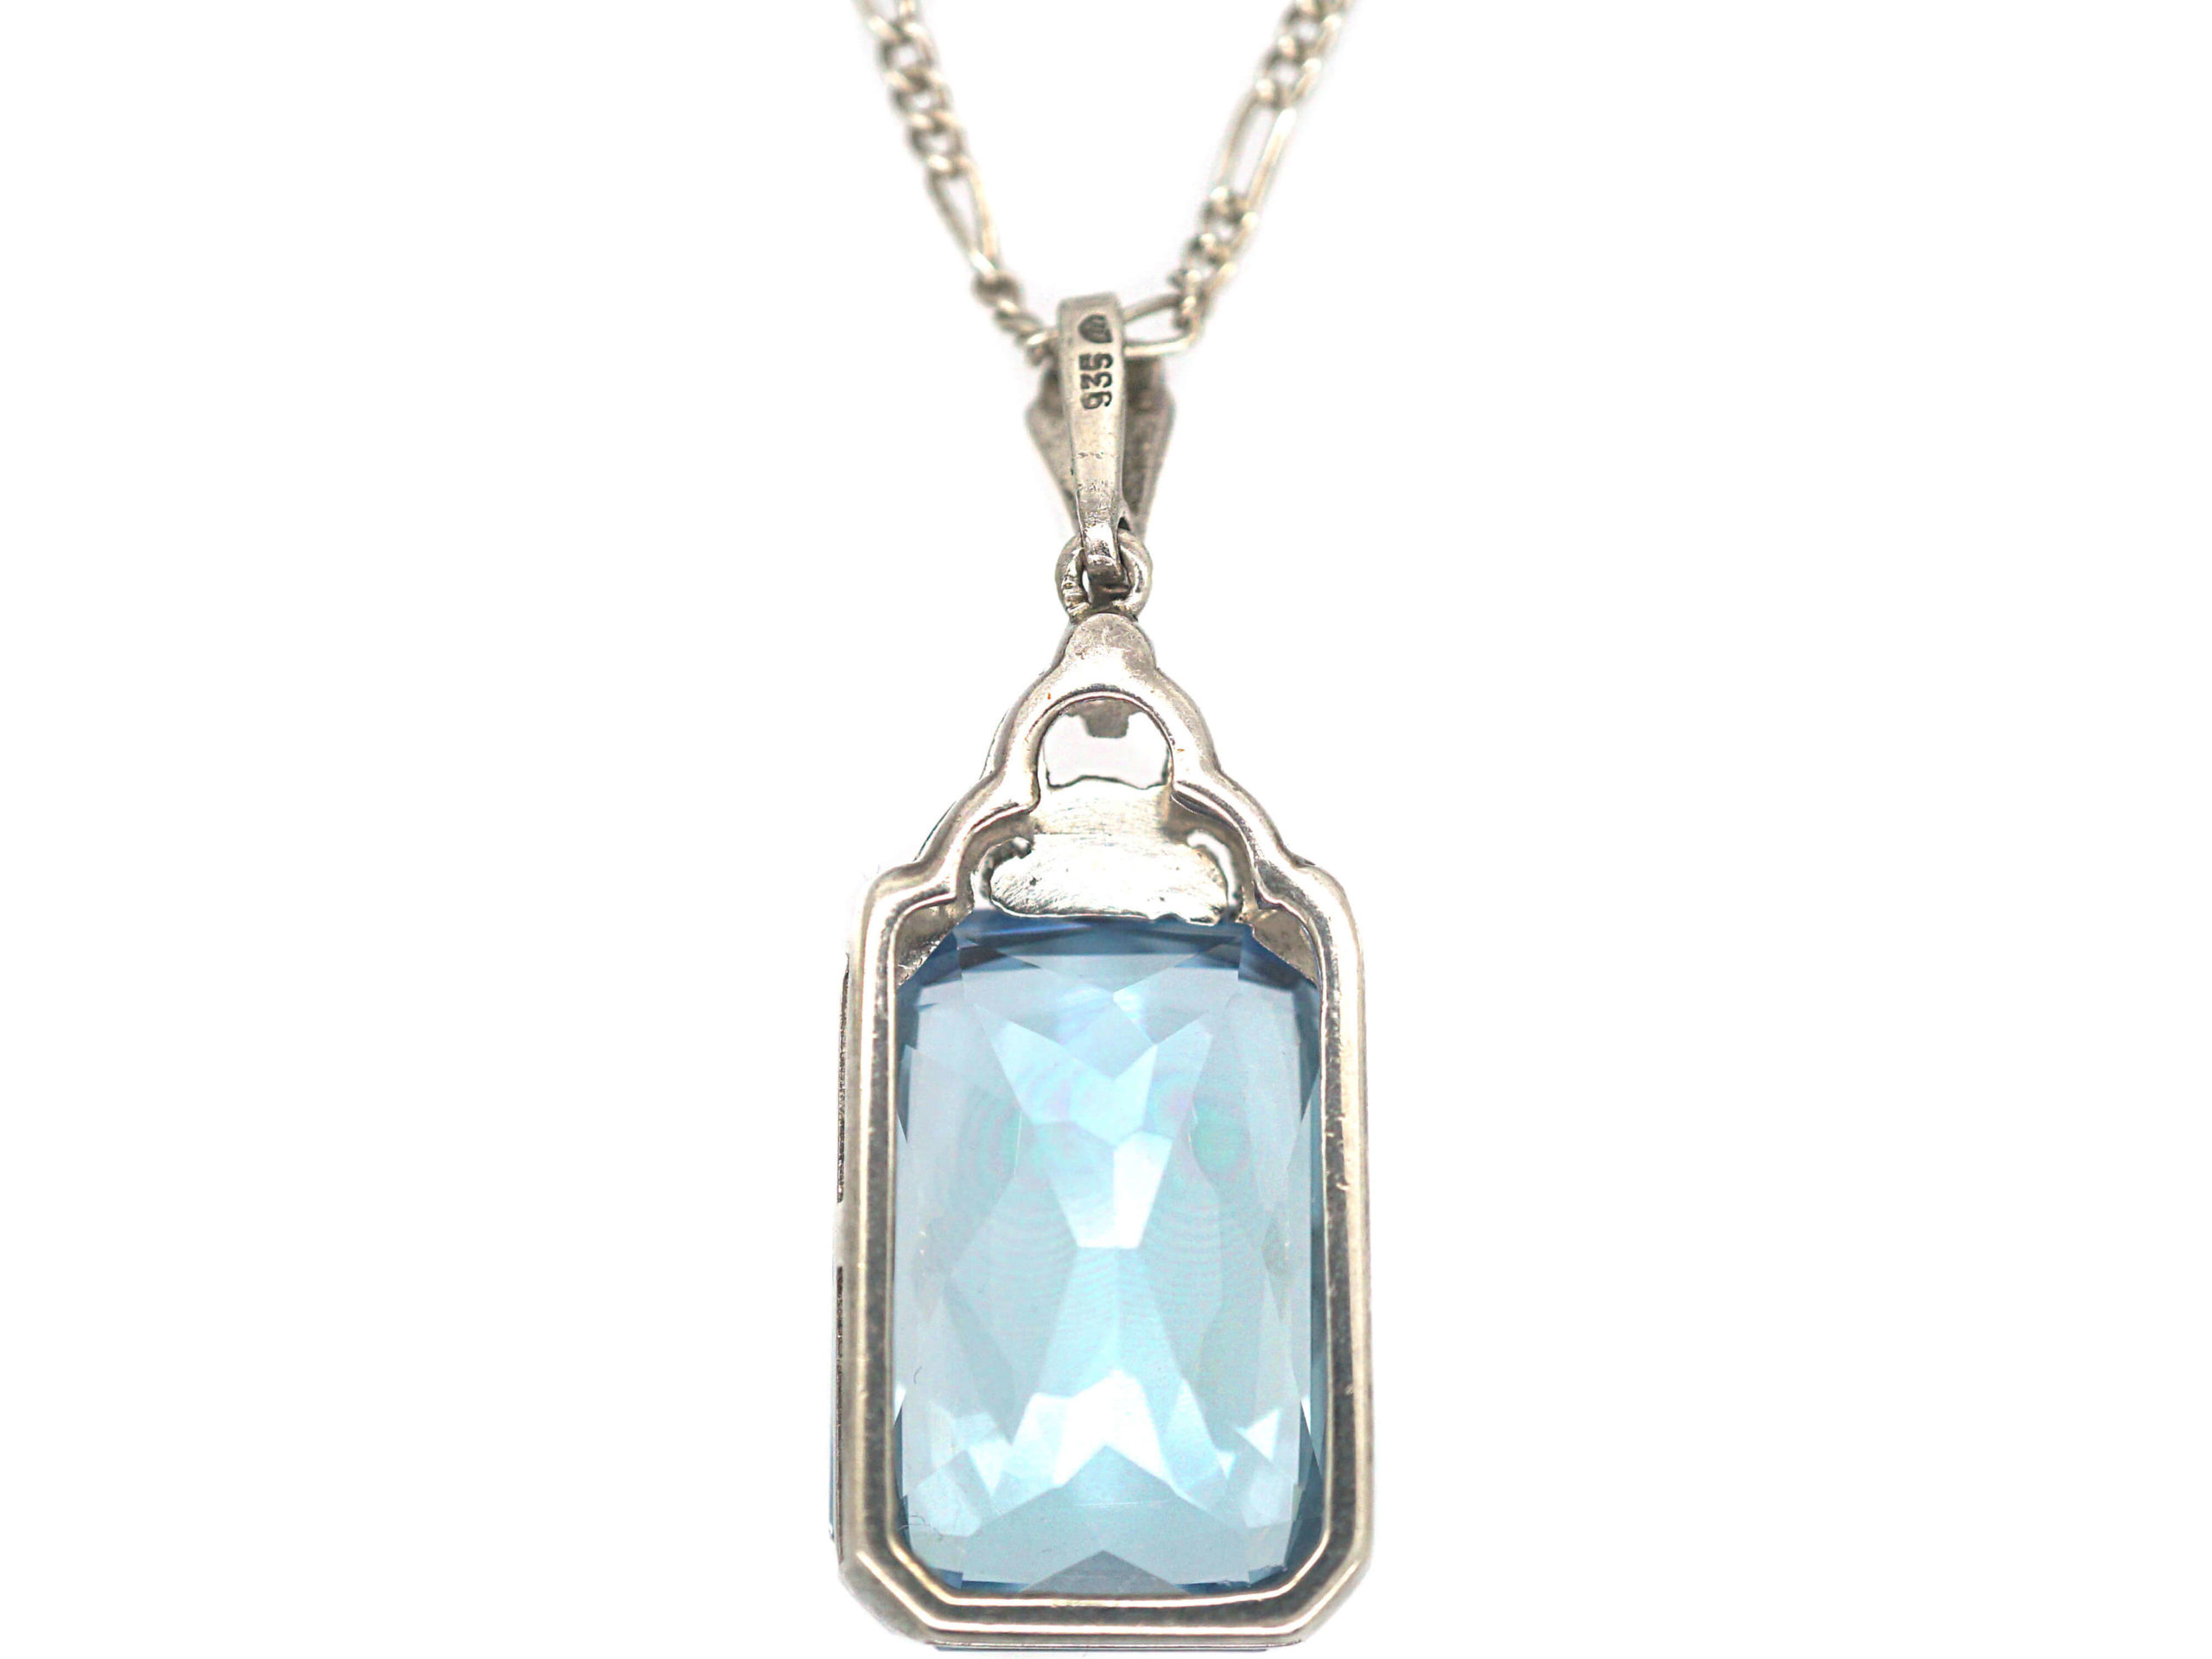 Art Deco Silver Synthetic Spinel Pendant on a Silver Chain